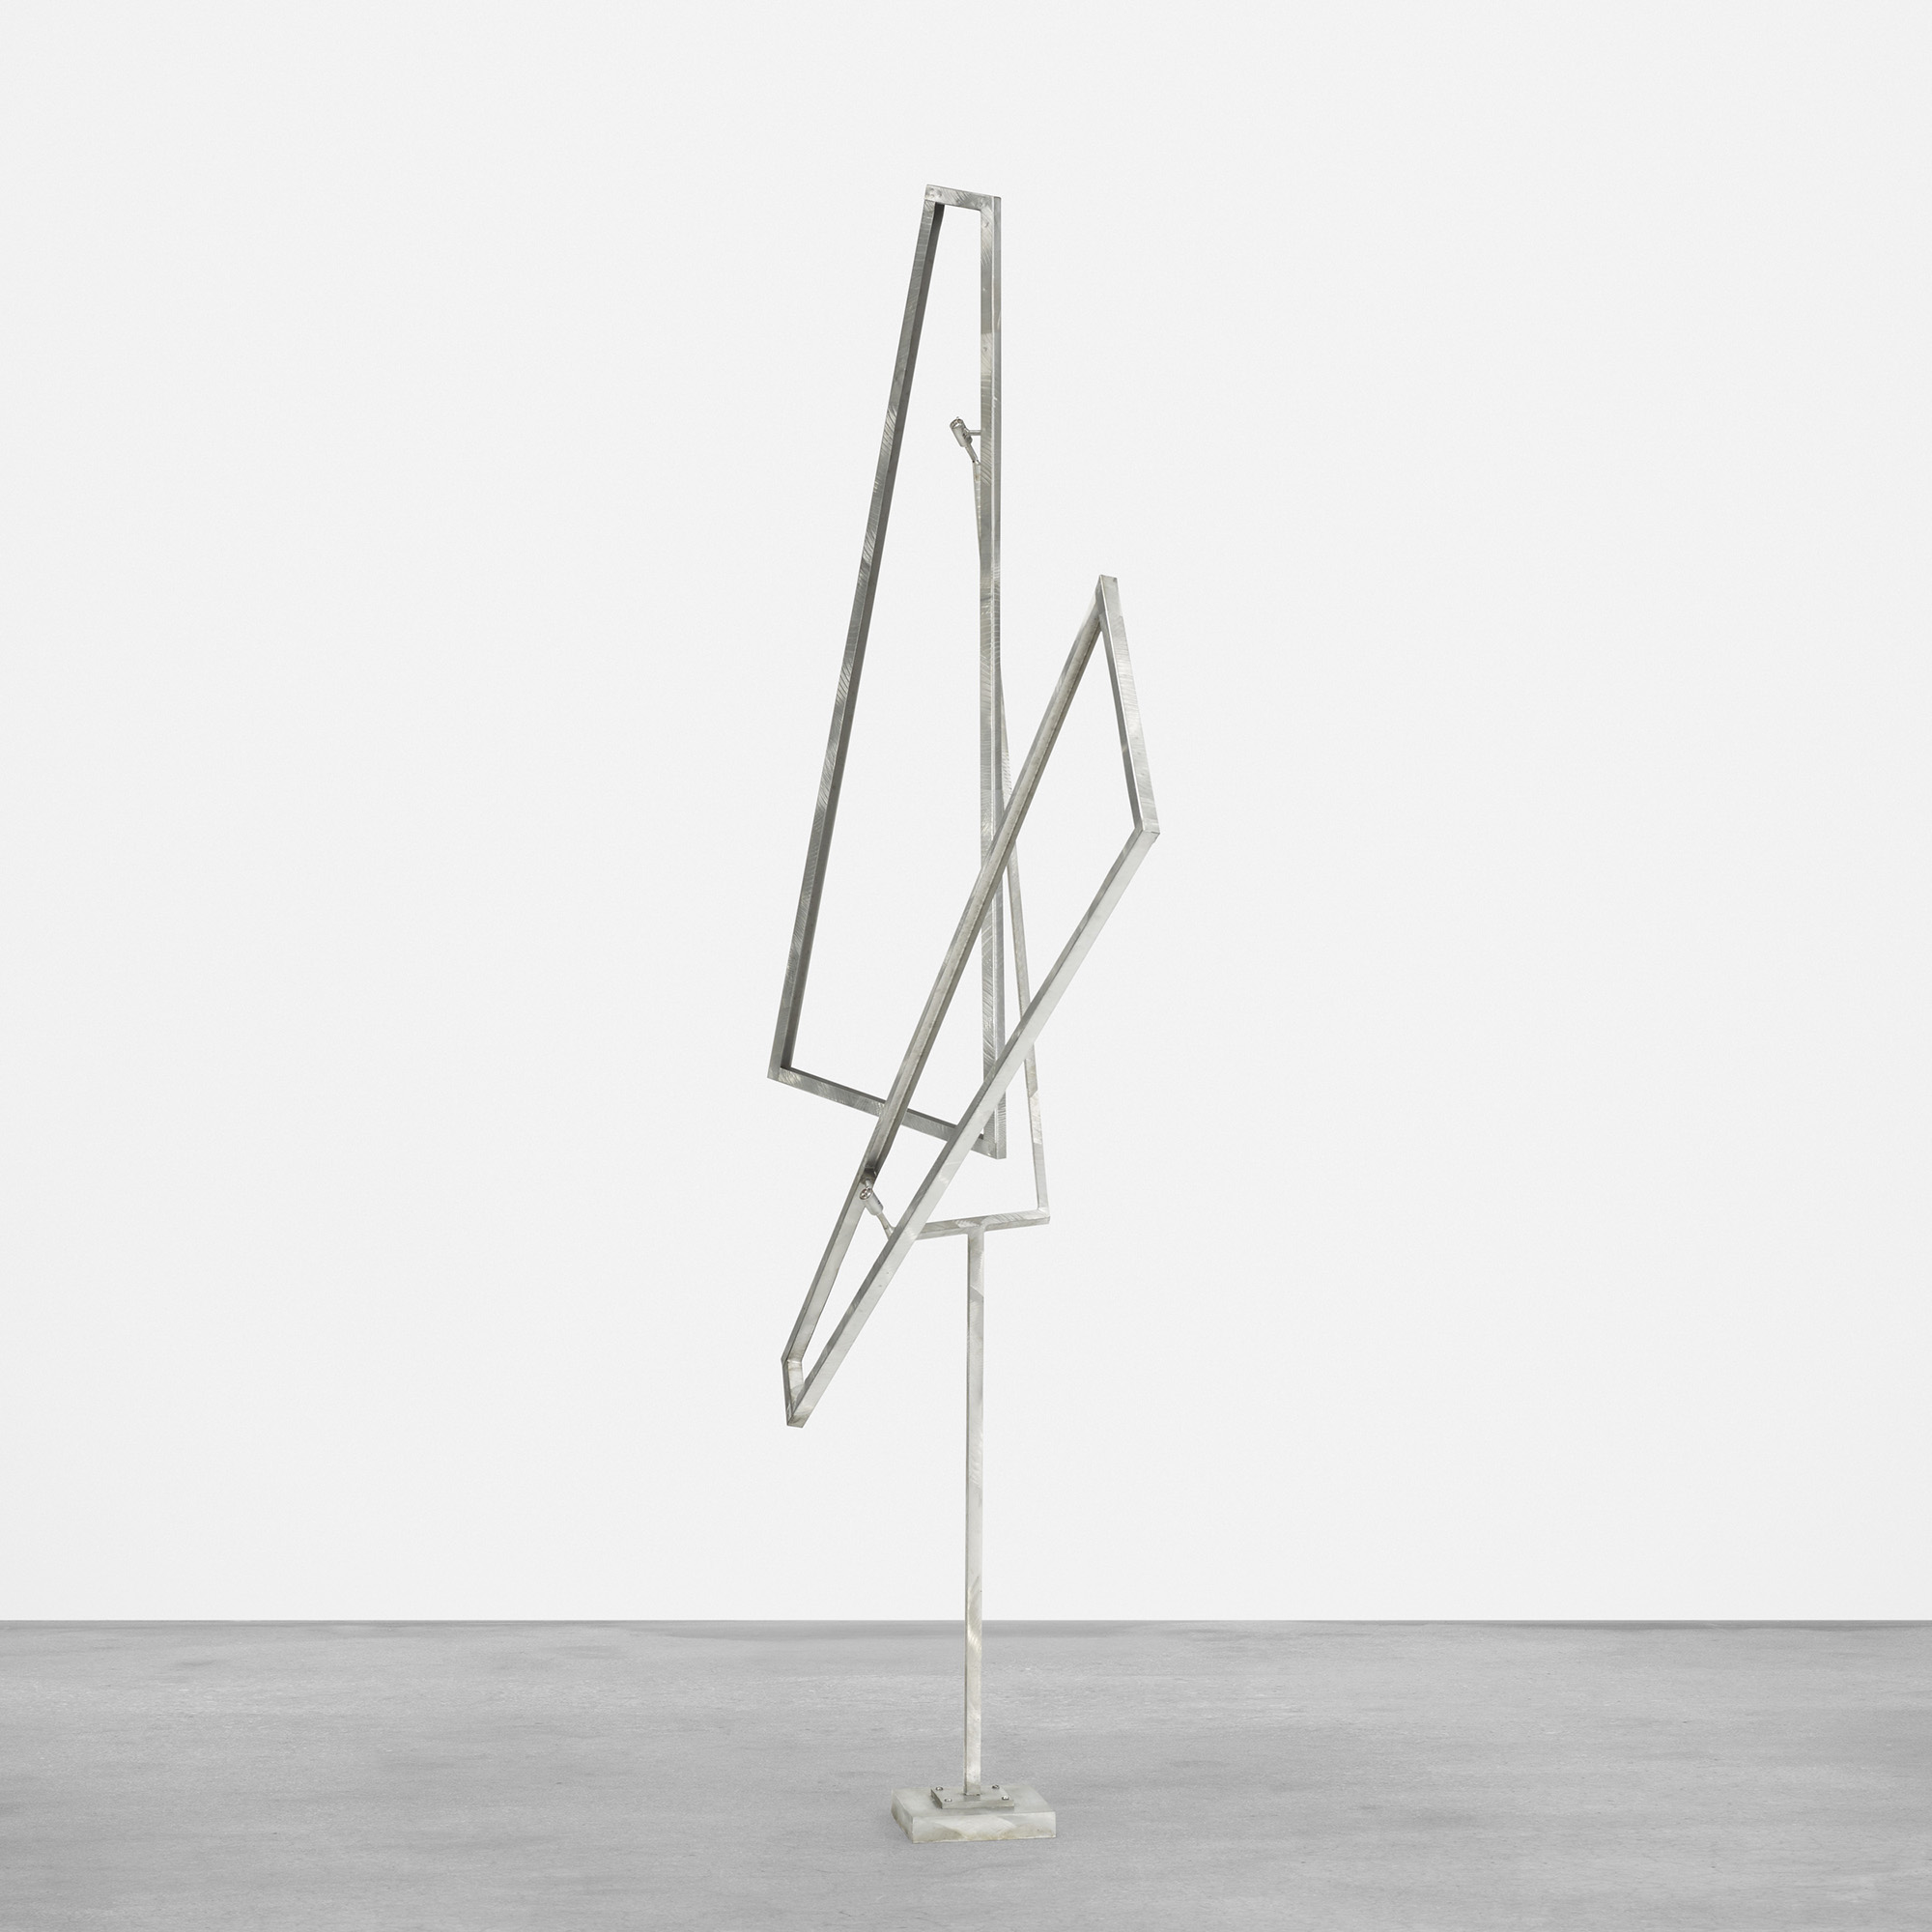 Two Trapezoids Eccentric, One Up, One Down, 1978  , Stainless steel, 68 x 58 1/2 x 12 1/2 inches